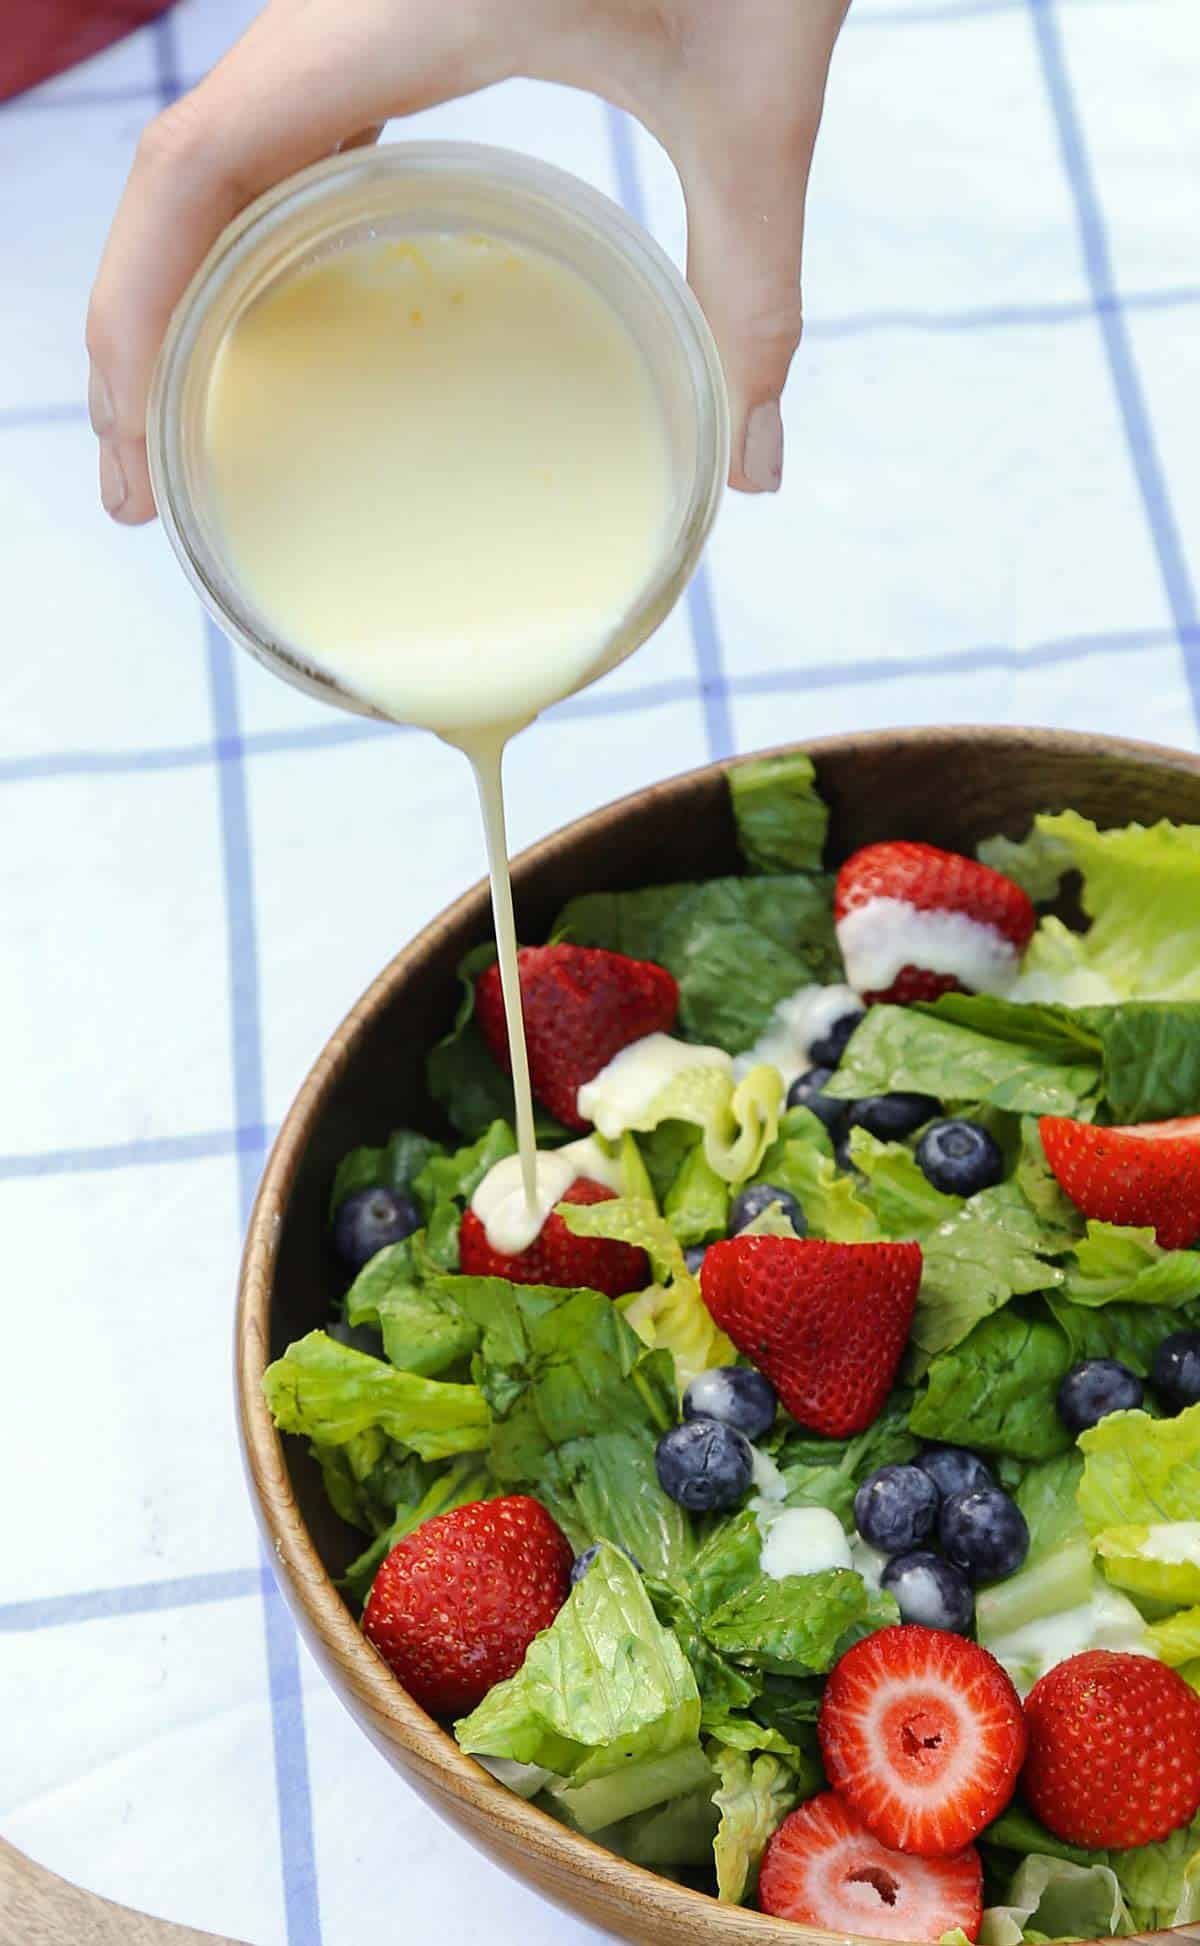 Creamy Lemon Salad Dressing is a homemade salad dressing recipe that can be used in so many ways!   easy lemon salad dressing   lemon salad dressing recipe   creamy lemon dressing   fish marinade